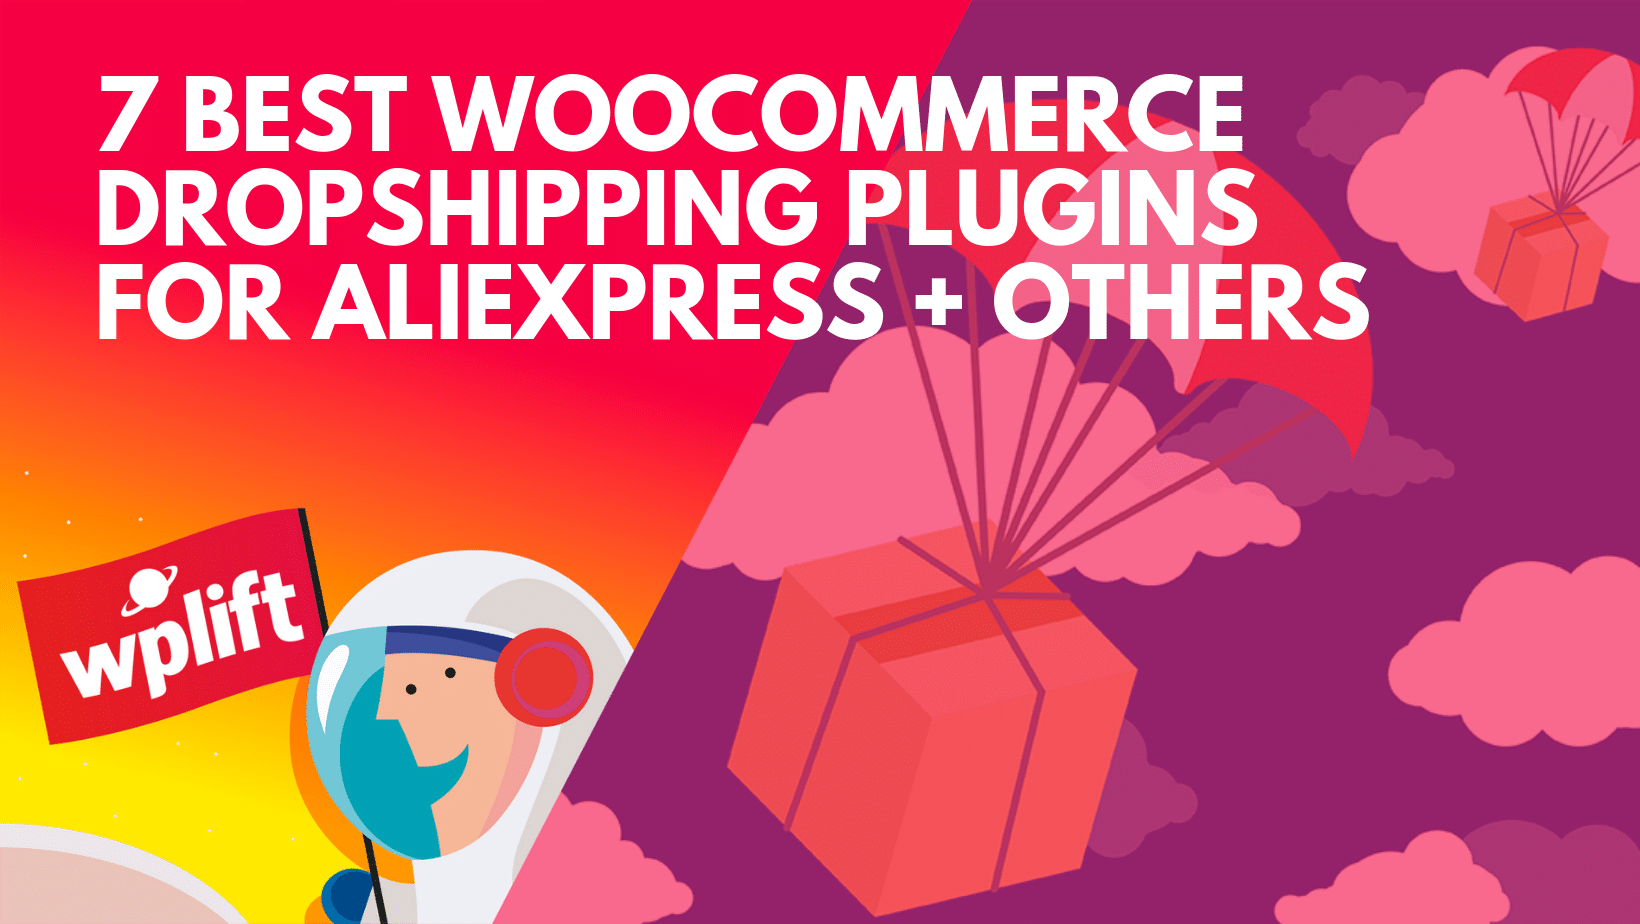 7 Best WooCommerce Dropshipping Plugins For AliExpress + Others